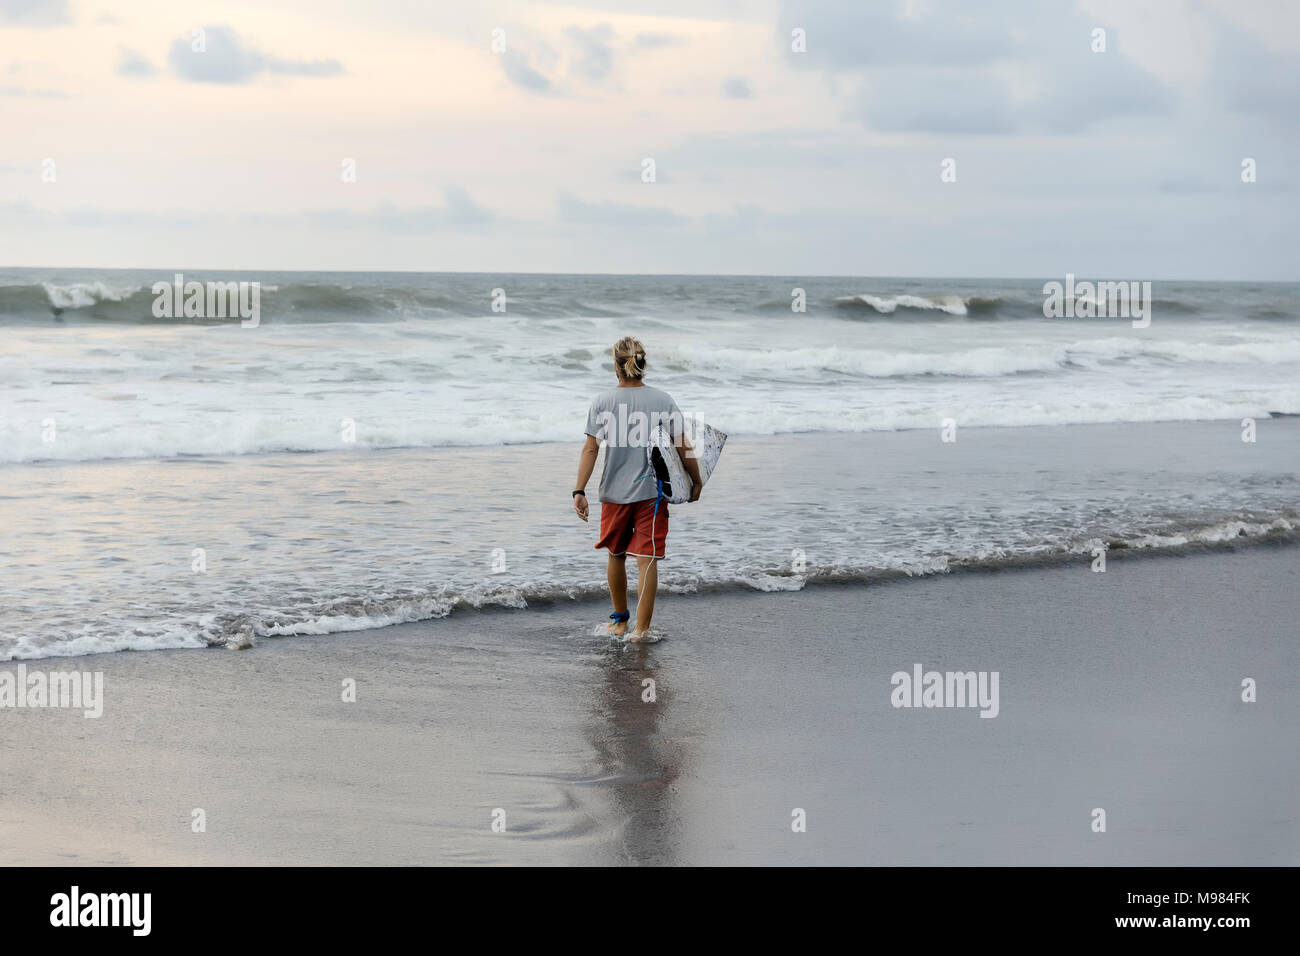 Indonesia, Bali, surfer walking into water - Stock Image